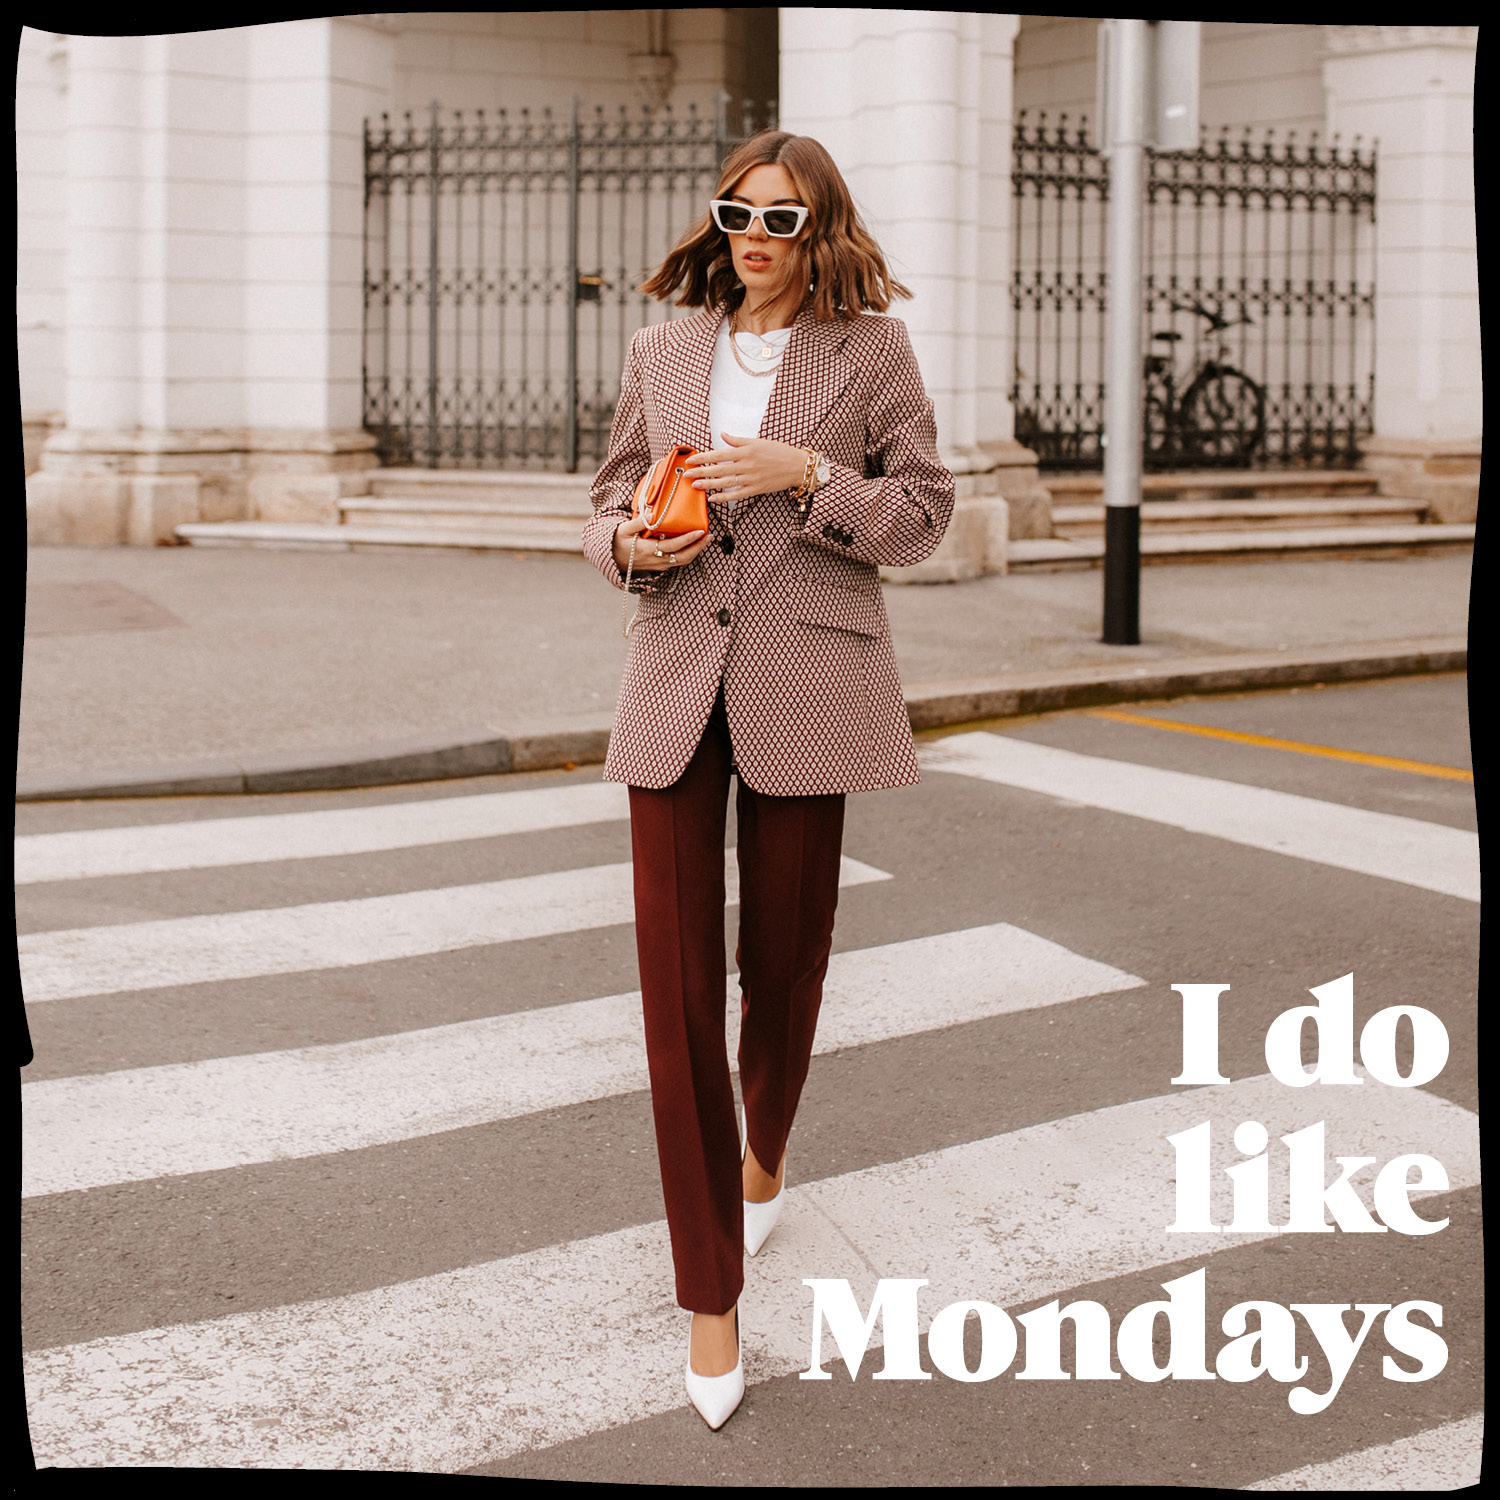 i_do_like_mondays_04.jpg